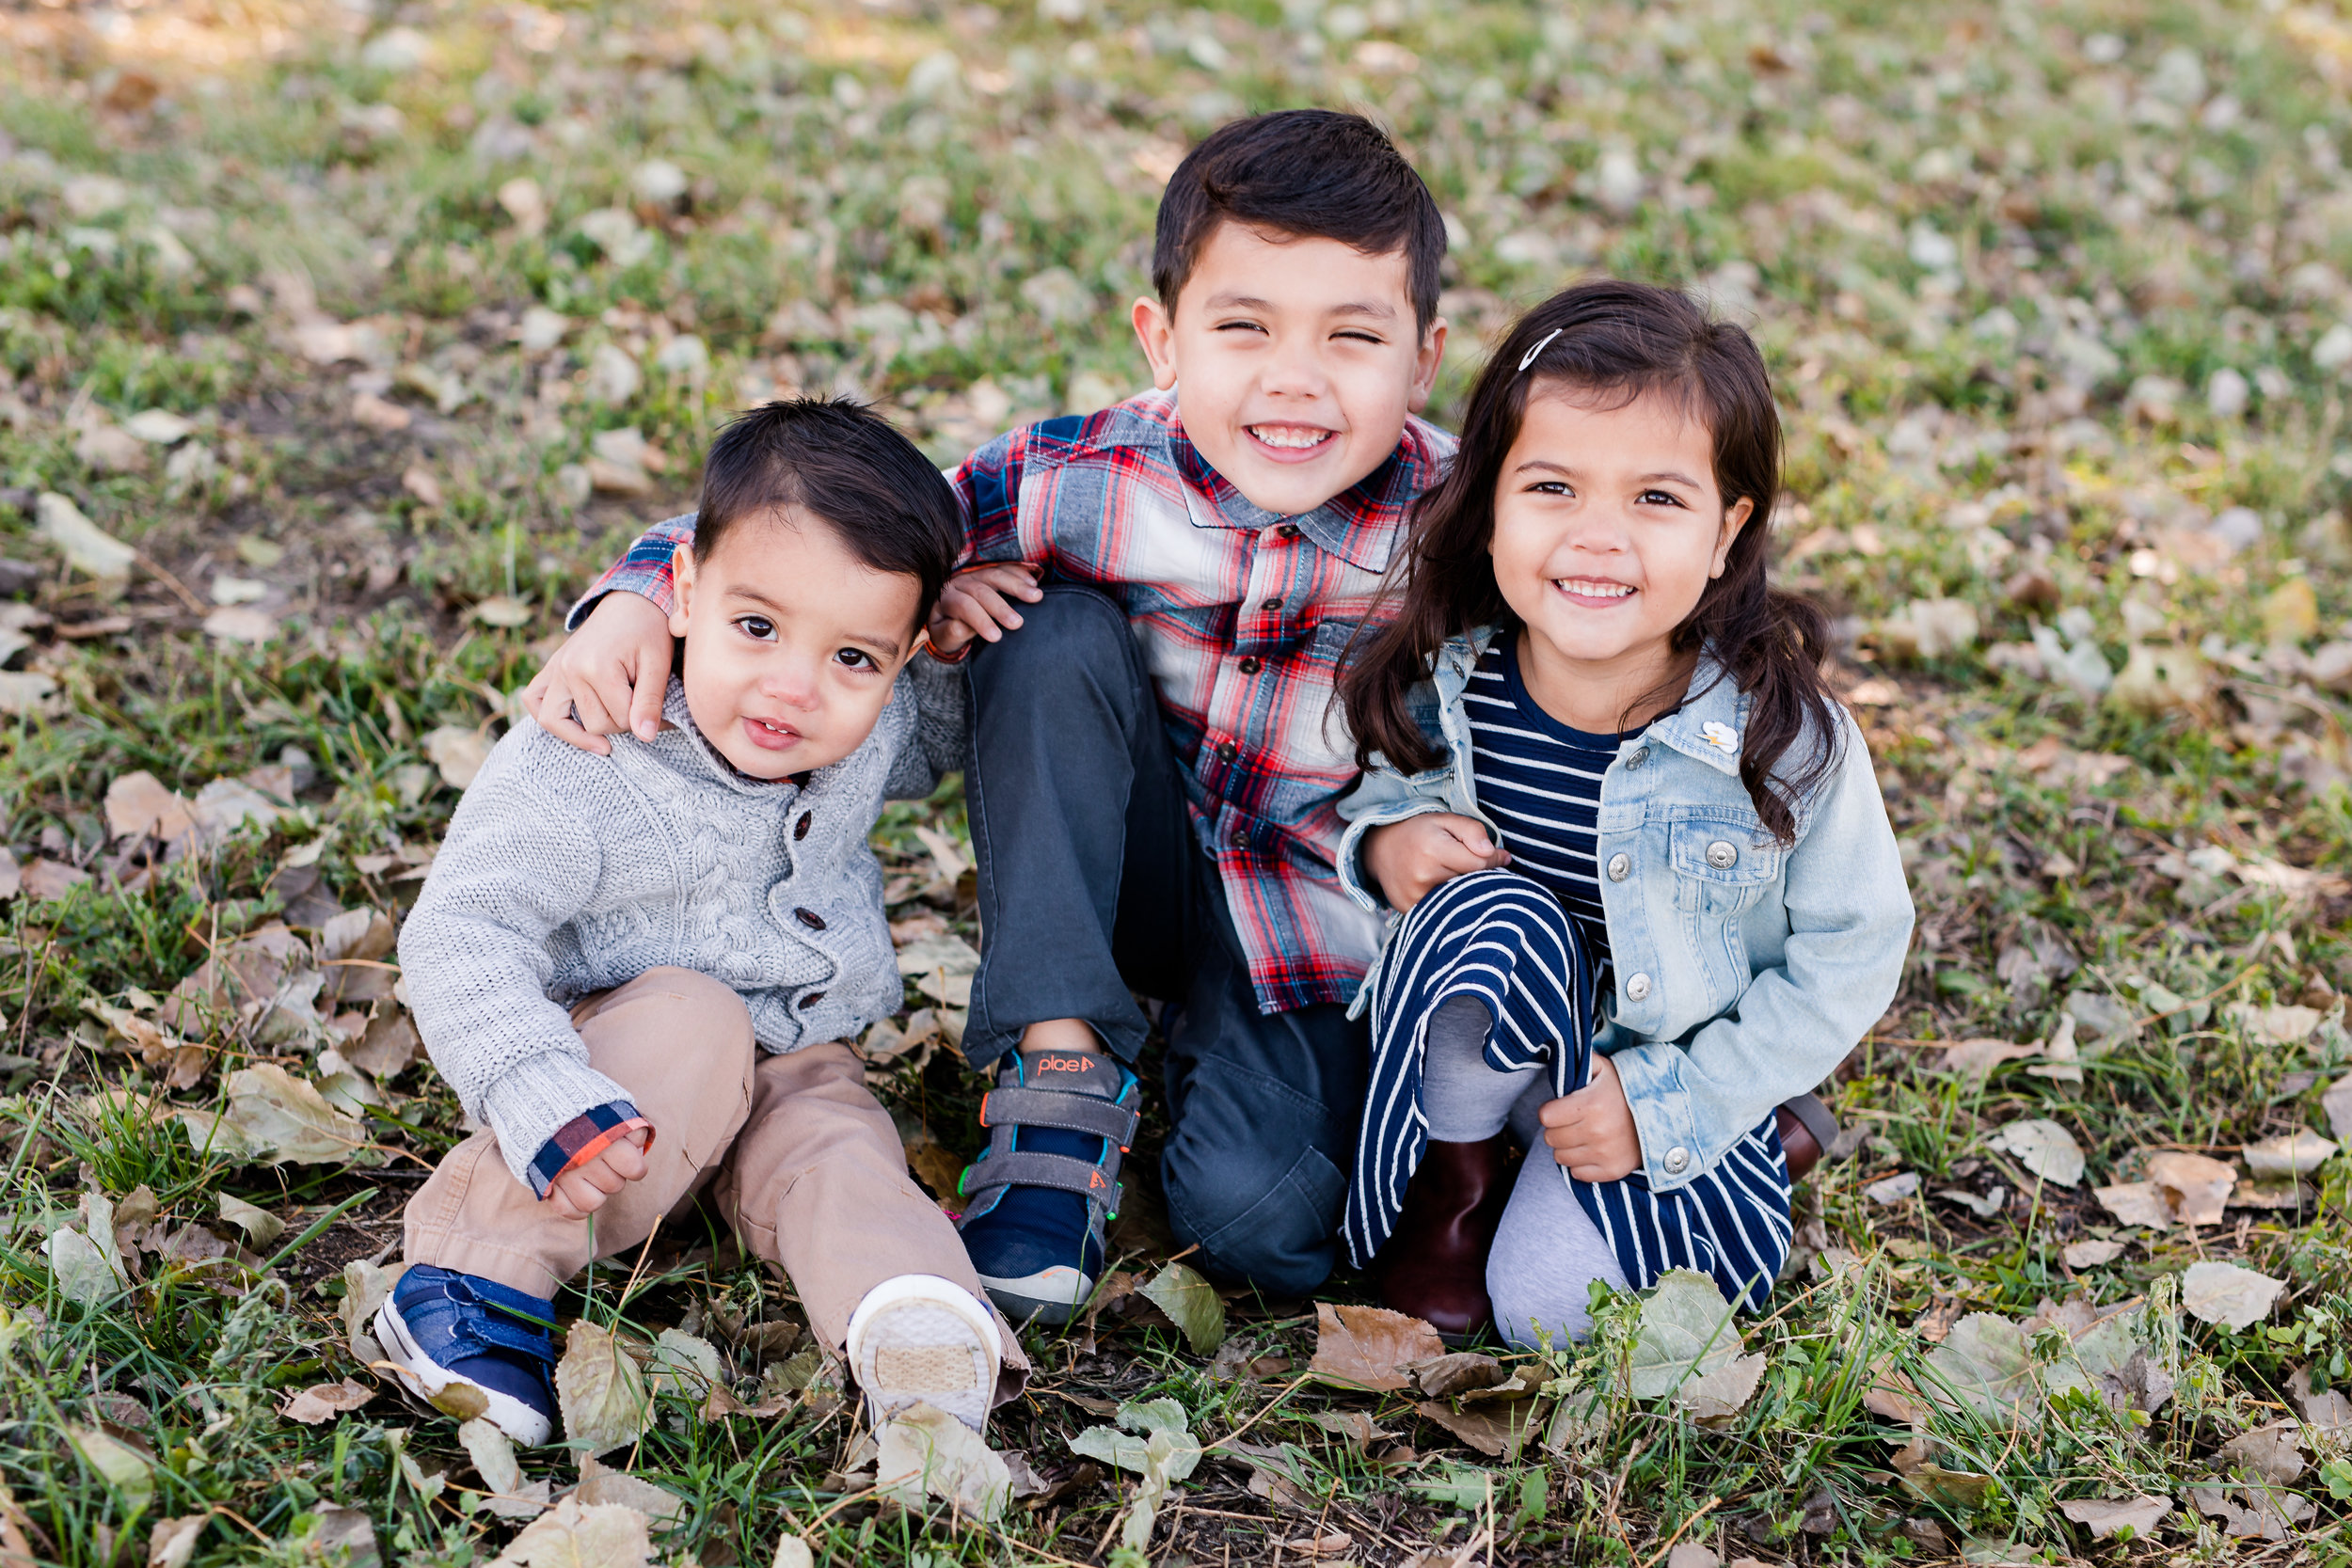 Kids Only + Digital Images - Includes appx 30 min of photography timeJust the kids (excludes newborn)Perfect for 1 Outfit & 1 Location10+ digital images with print release$300 + tax